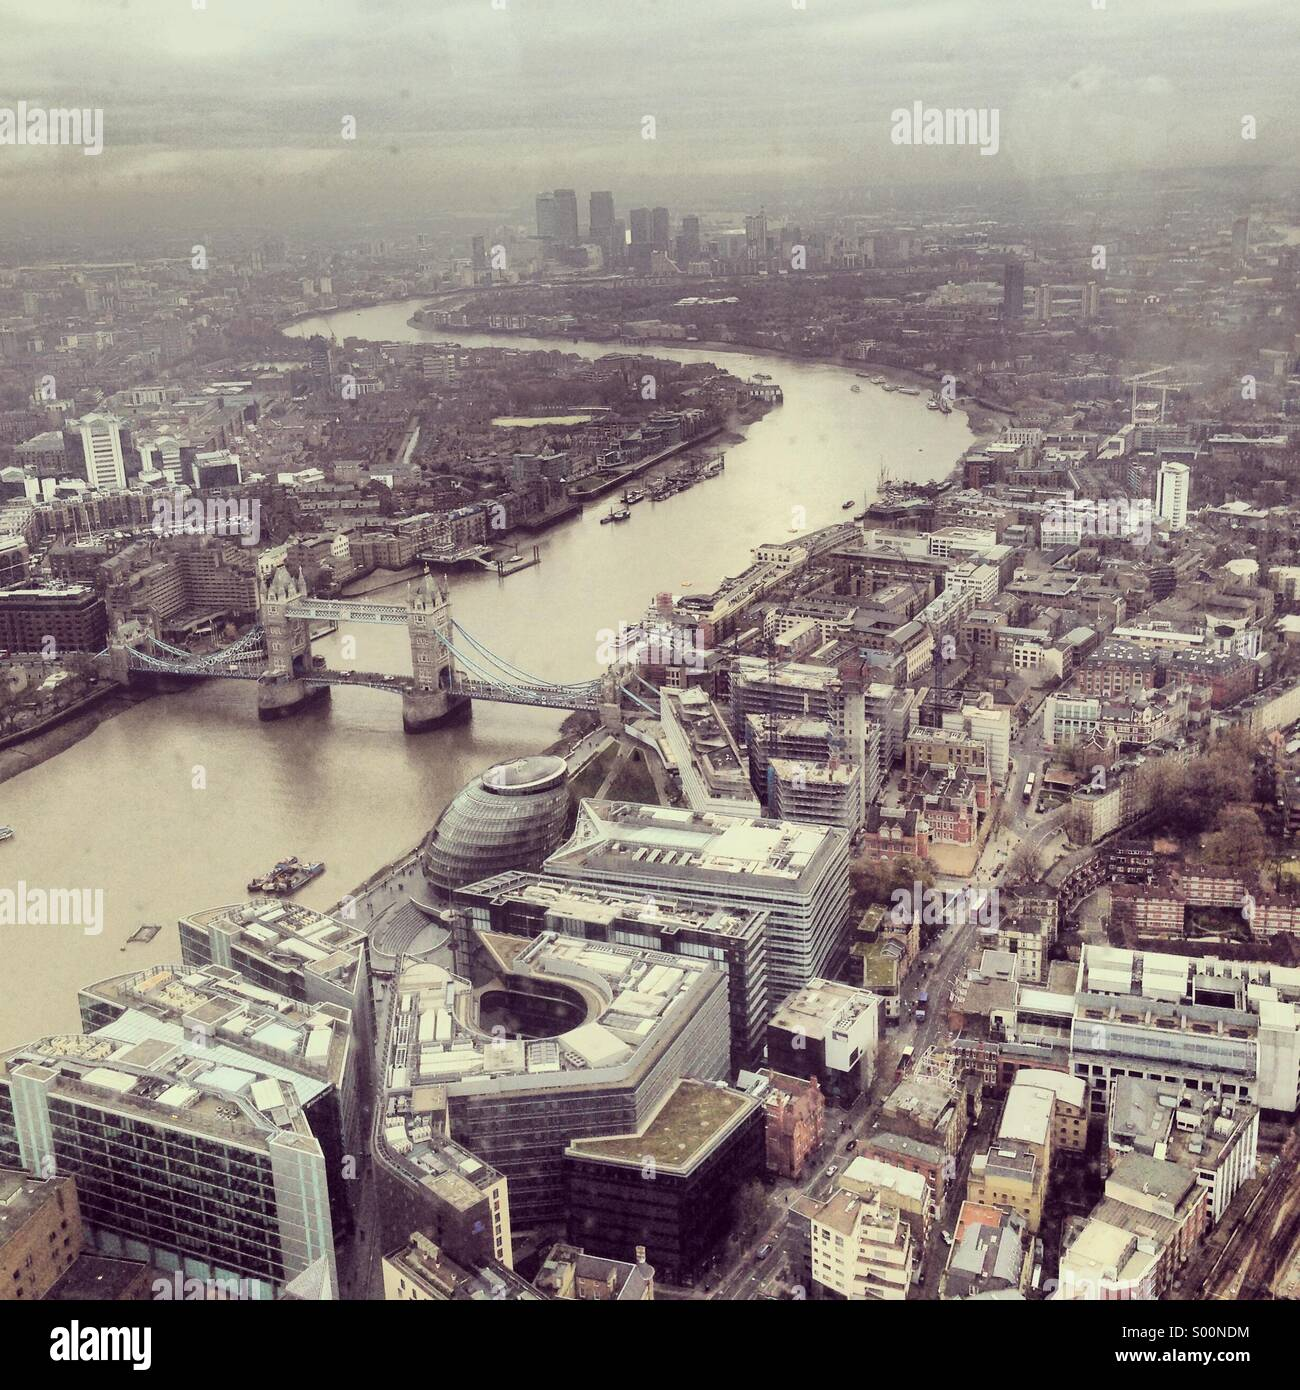 River Thames, aerial view - Stock Image